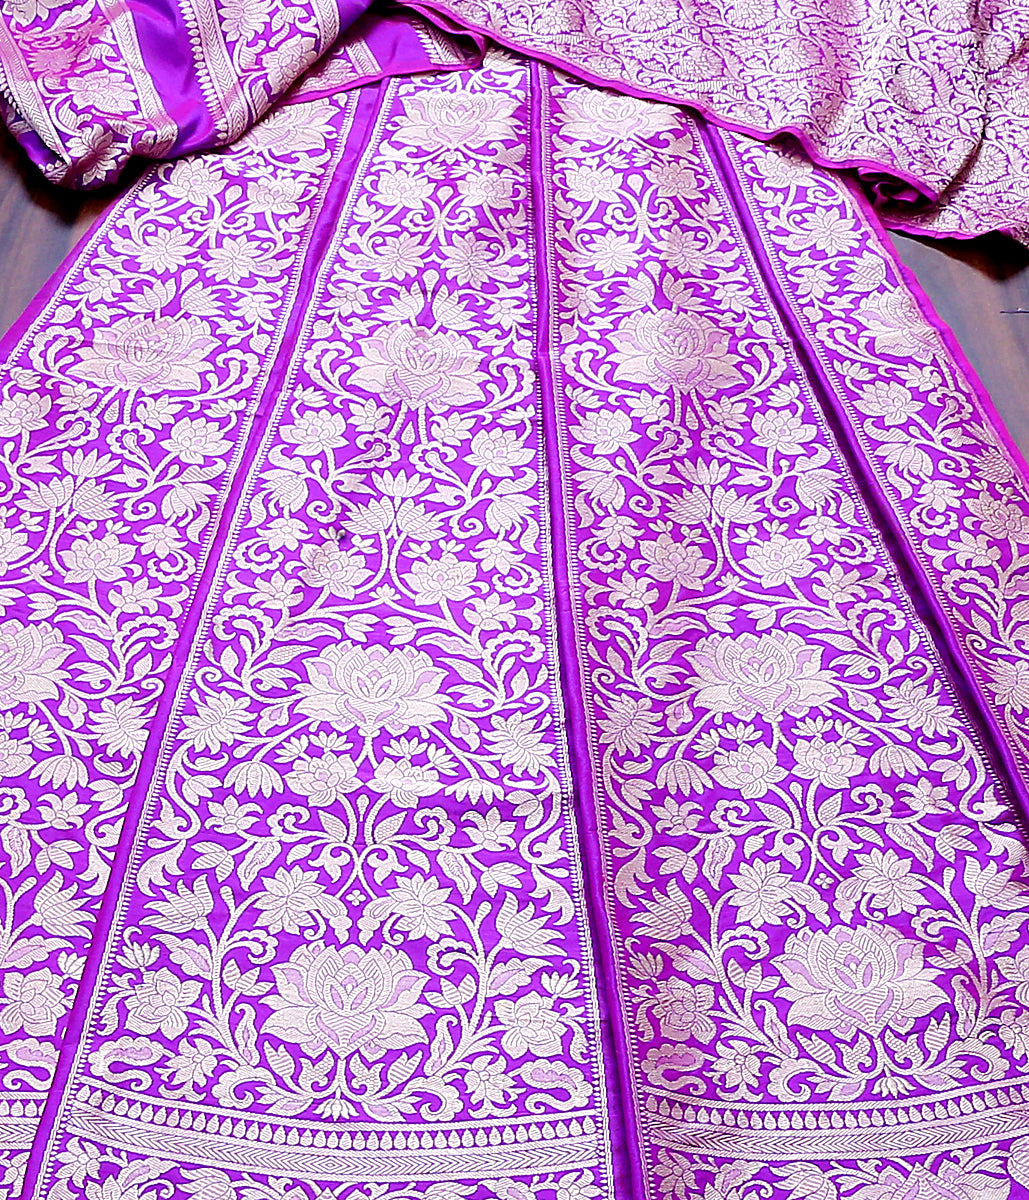 Handwoven Banarasi Lehenga in purple and pink dual tone